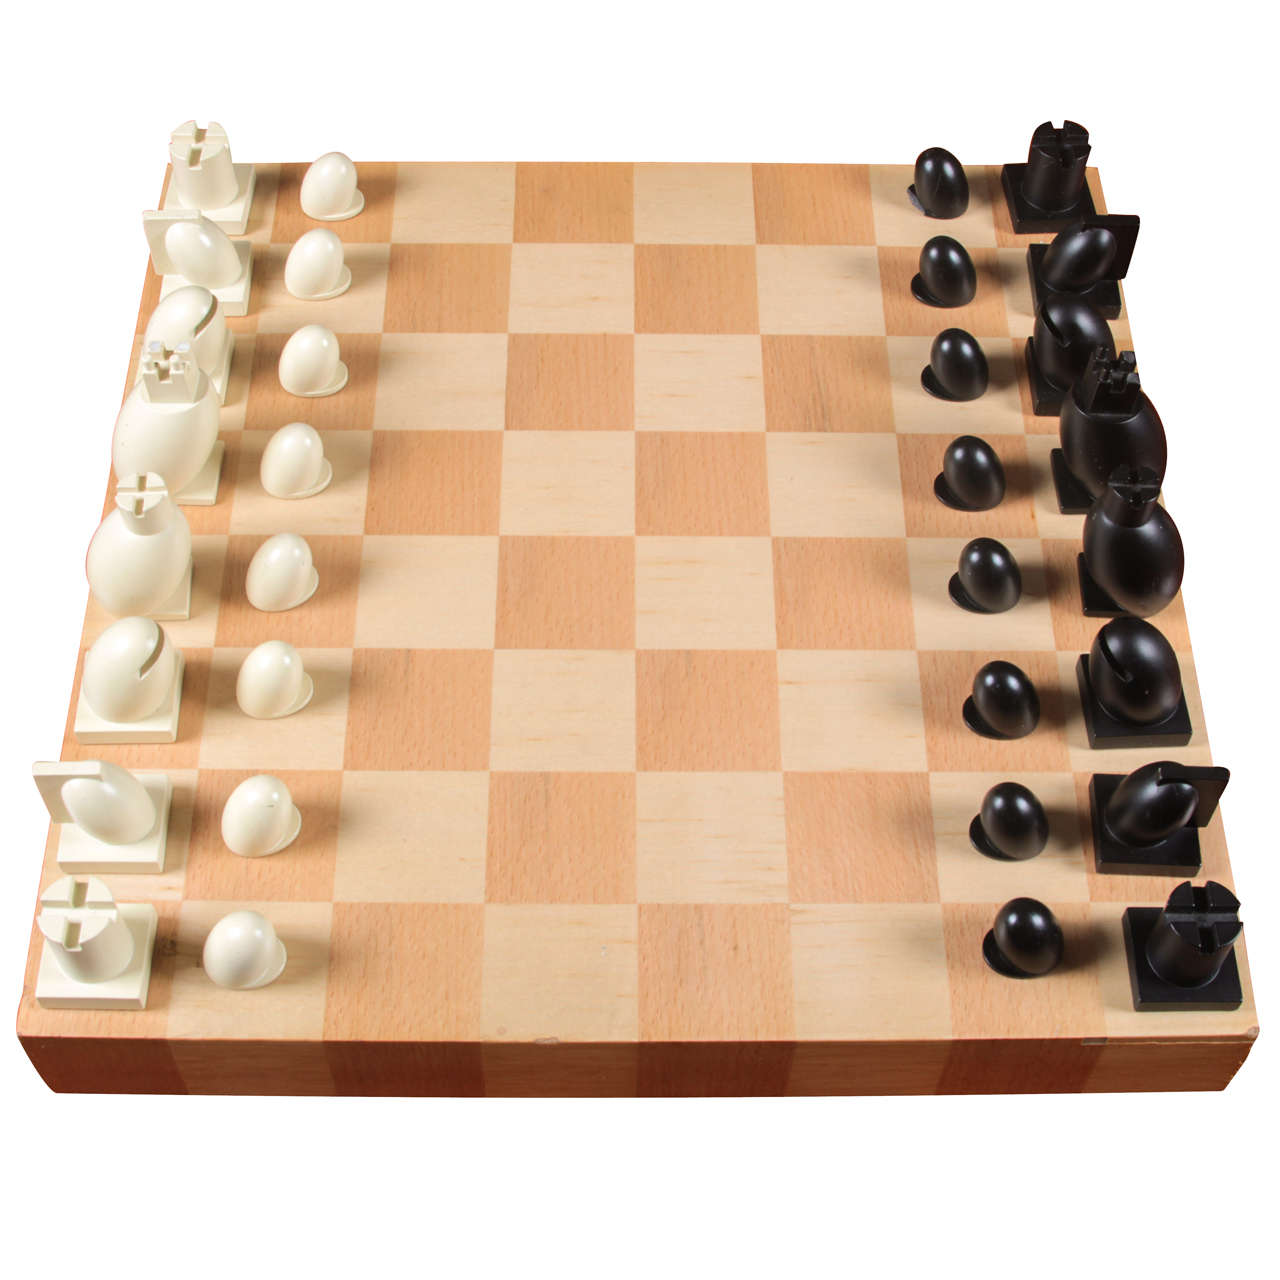 Michael Graves Chess Set For Sale At 1stdibs